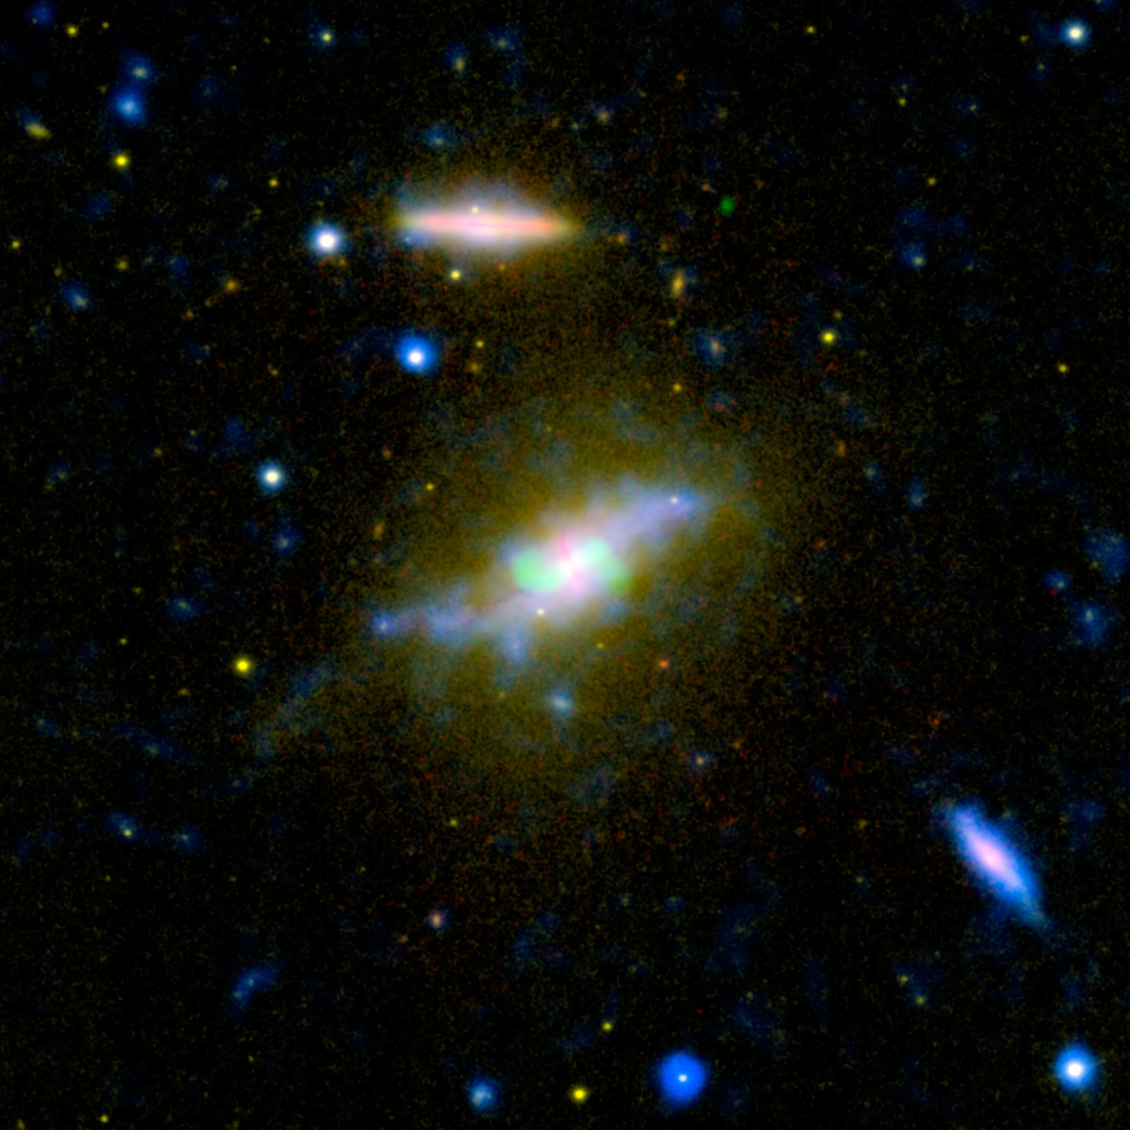 "Time is running out for the galaxy NGC 3801, seen in this composite image combining light from across the spectrum, ranging from ultraviolet to radio. NASA's Galaxy Evolution Explorer and other instruments have helped catch the galaxy NGC 3801 in the act of destroying its cold, gaseous fuel for new stars. Astronomers believe this marks the beginning of its transition from a vigorous spiral galaxy to a quiescent elliptical galaxy whose star-forming days are long past.Visible light from the Sloan Digital Sky Survey is seen in yellow shining from all of the galaxy's stars. Notice that NGC 3801 is starting to possess a broadly elliptical shape, the characteristic shape a galaxy assumes after forming from a merger of spiral galaxies. Some star formation is still taking place in NGC 3801, as shown in the ultraviolet by the Galaxy Evolution Explorer (colored blue), and in the dusty disk revealed in infrared light by NASA's Spitzer Space Telescope (red). According to theory, that lingering star formation will soon be quenched by shock waves from two powerful jets shooting out of NGC 3801's central giant black hole. Radio emissions from those jets appear in this image in green. Like a cosmic leaf blower, the jets' expanding shock waves will blast away the remaining cool star-making gas in NGC 3801. The galaxy will become ""red and dead,"" as astronomers say, full of old, red stars and lacking in any new stellar younglings.Near-ultraviolet light from the Galaxy Evolution explorer at a wavelength of 230 nanometers is rendered in blue, while visible light at 469 nanometers from Sloan is displayed in yellow. Infrared light at 8 microns from Spitzer is red, and radio emission at 20 centimeters from NRAO's Very Large Array is overlaid in green."